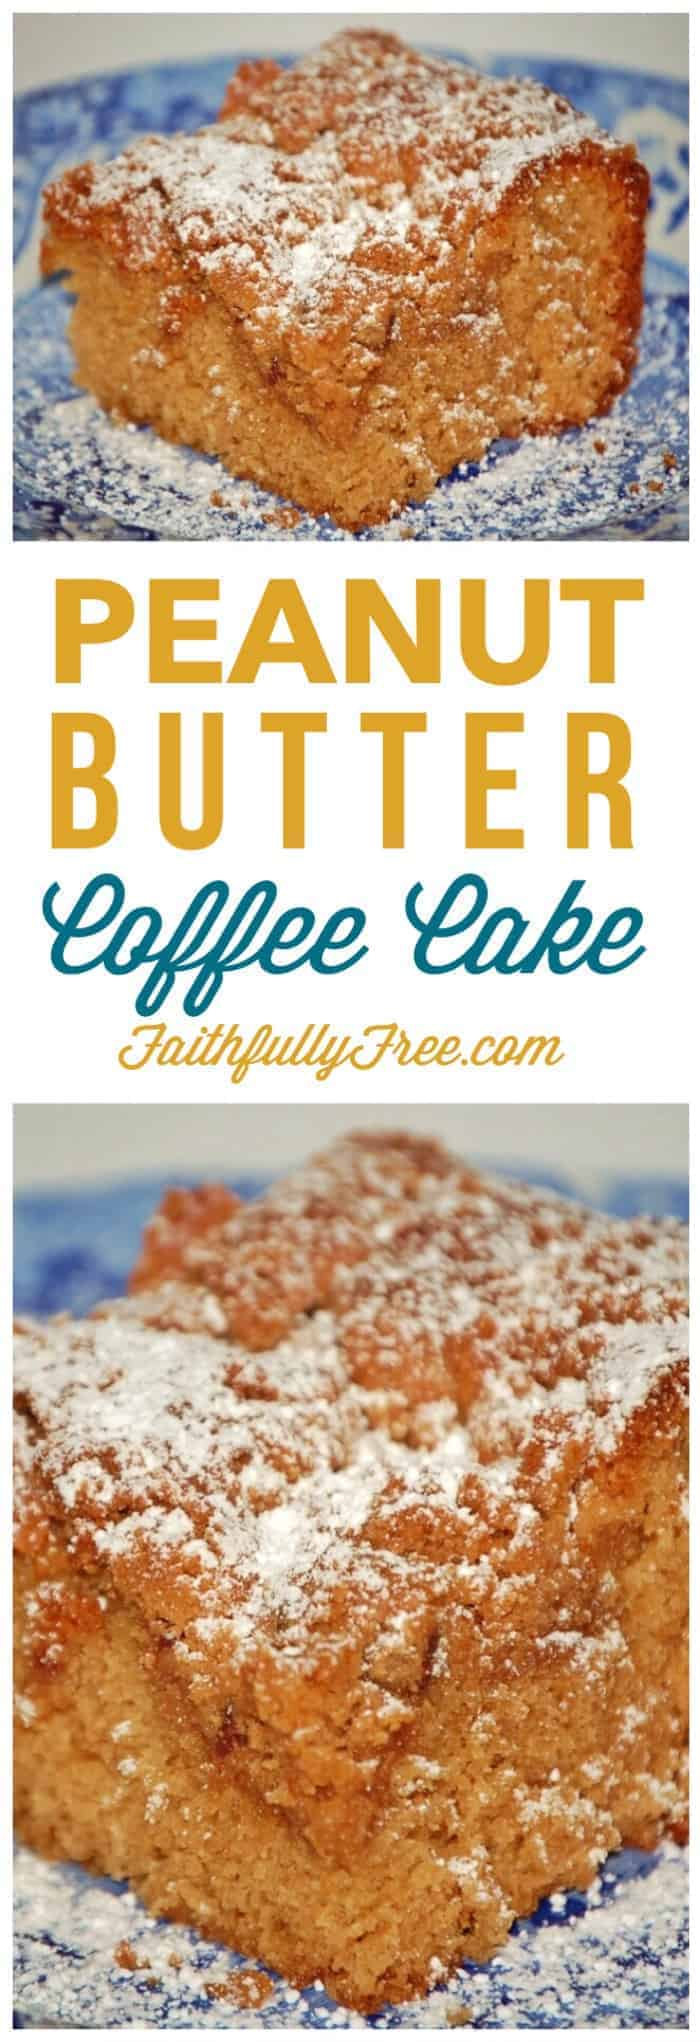 Peanut Butter Coffee Cake Recipe